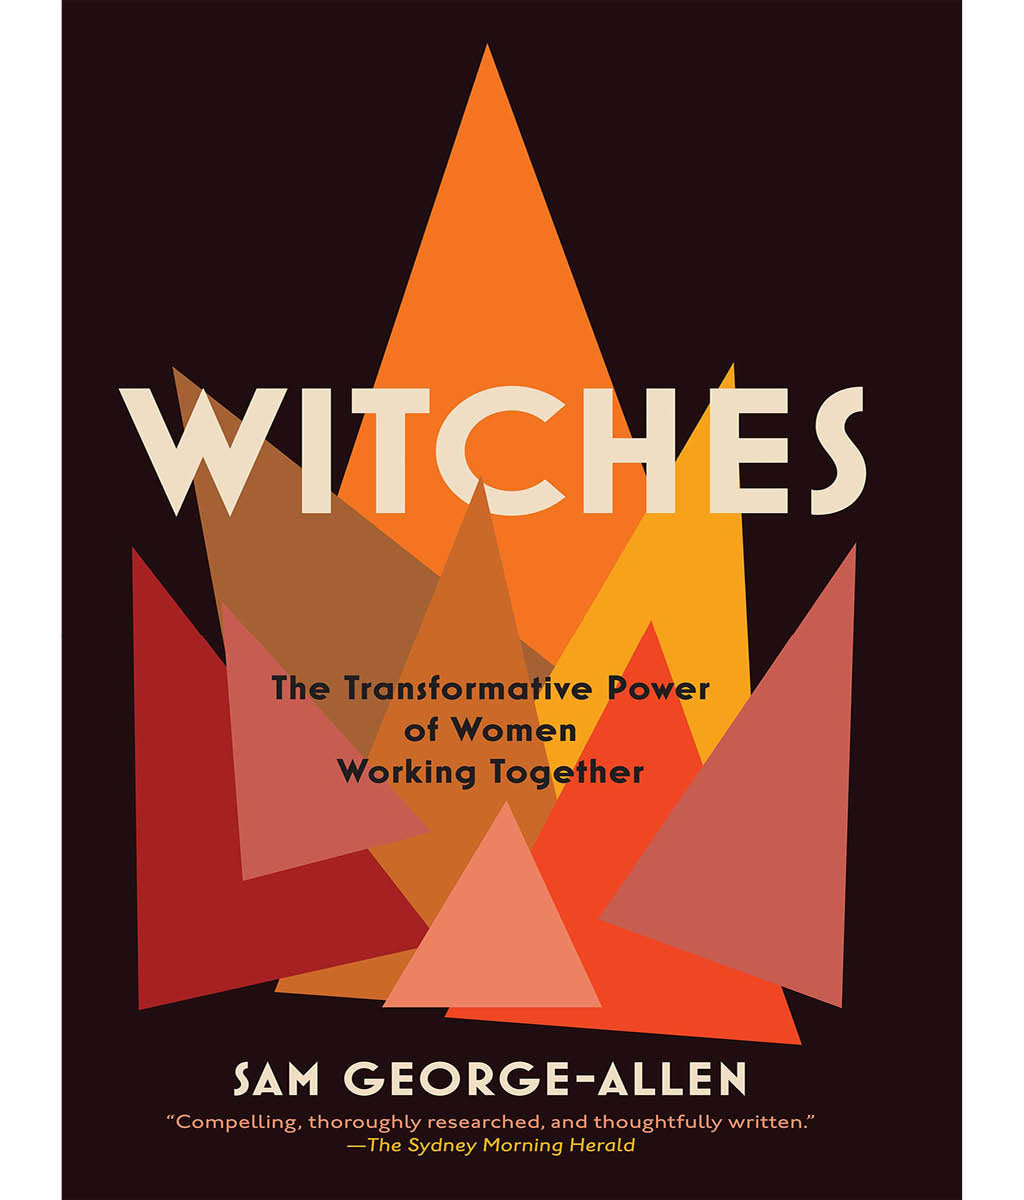 Witches: The Transformative Power of Women Working Together Sam George-Allen